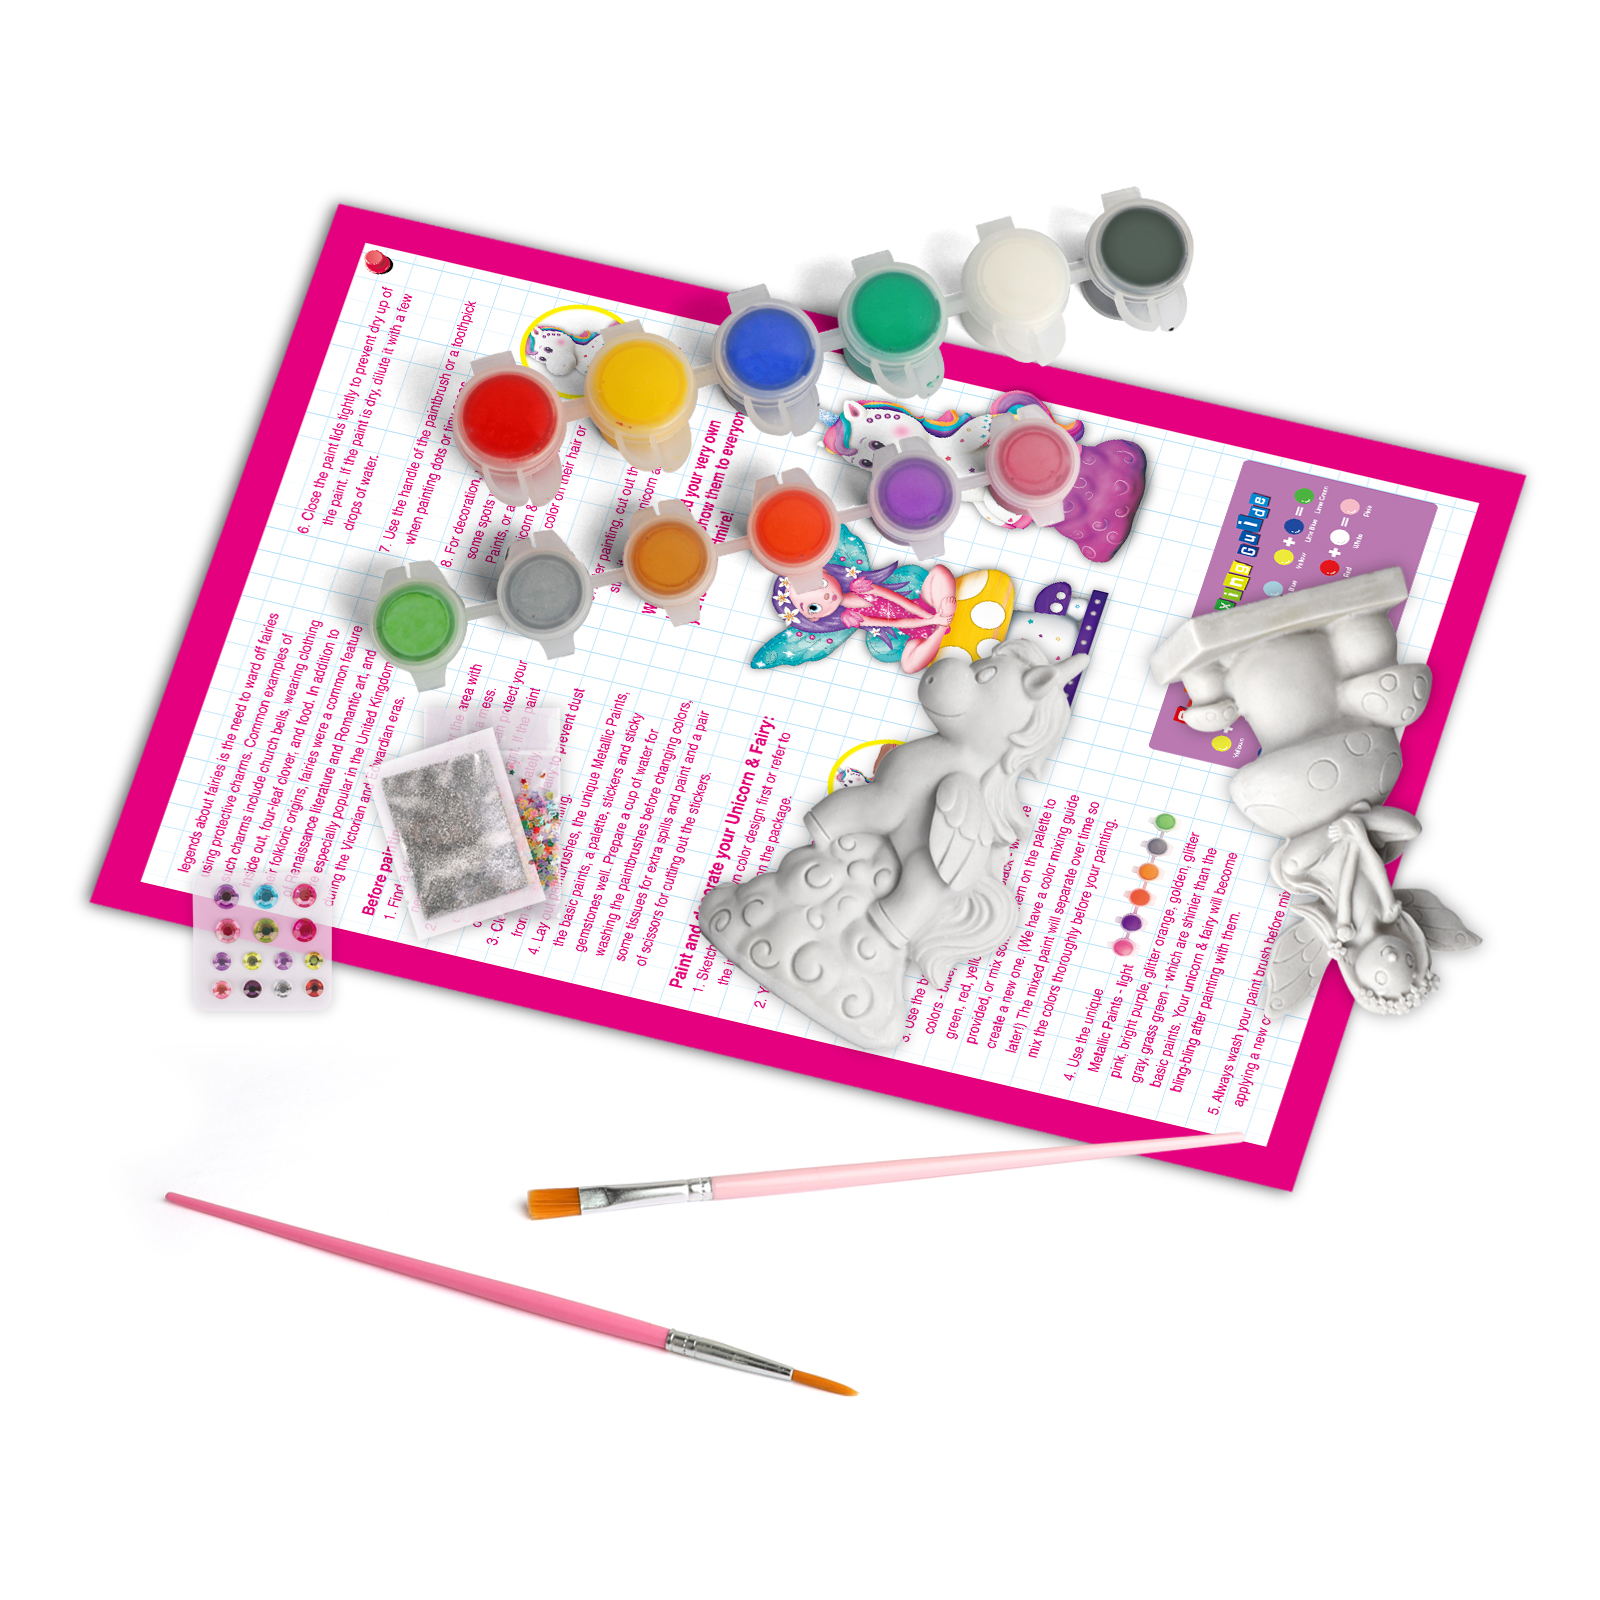 DIY Painting  Unicorn kit art toys drawing toy educational arts crafts color for kids rock other educational Fat Brain Toys